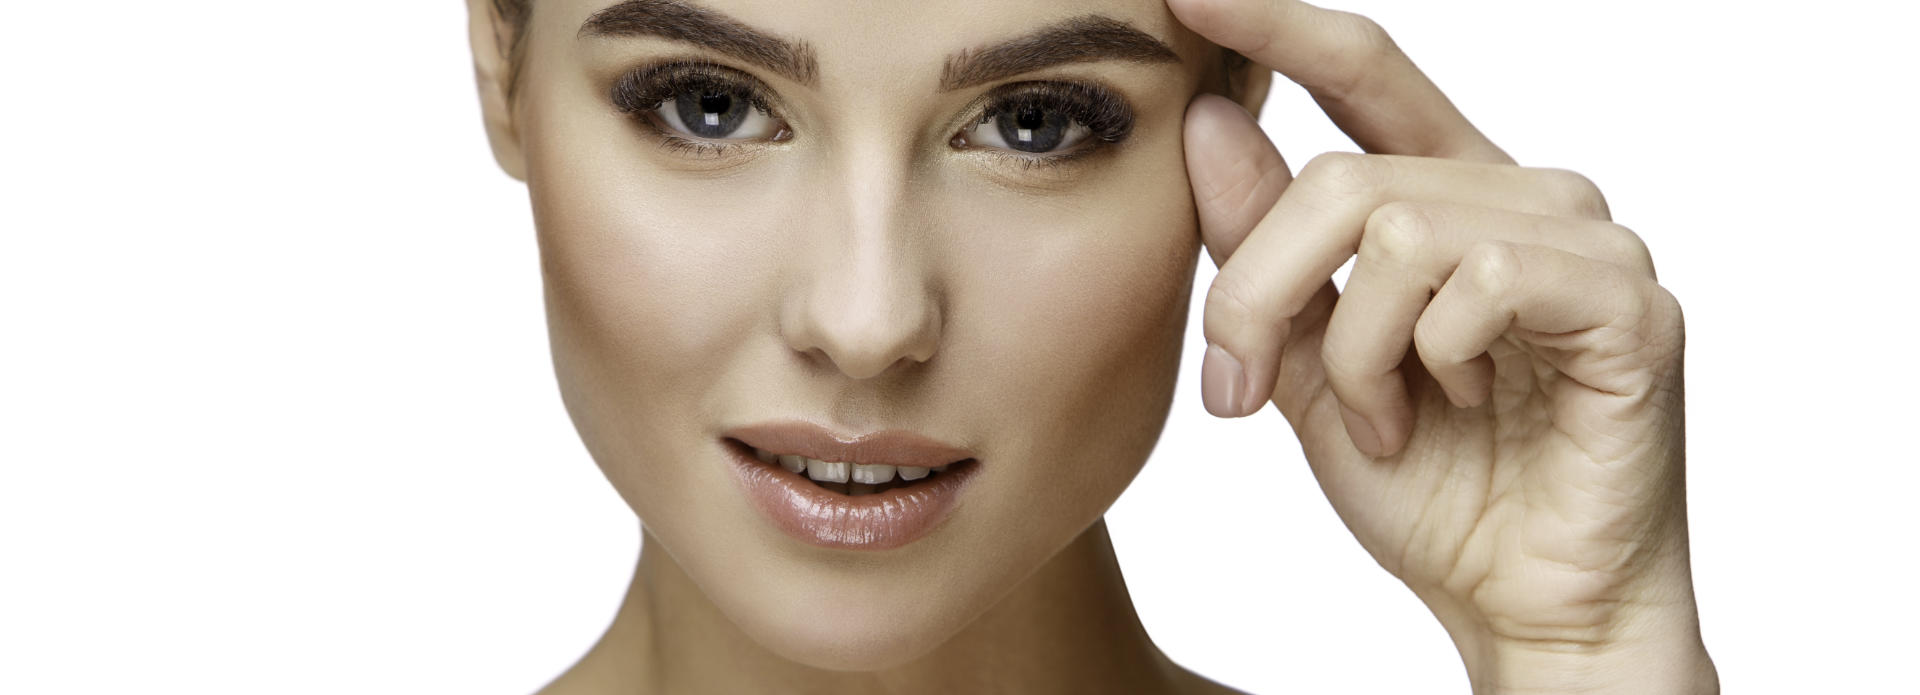 Face of a young-looking woman after cosmetic facial filler treatment.